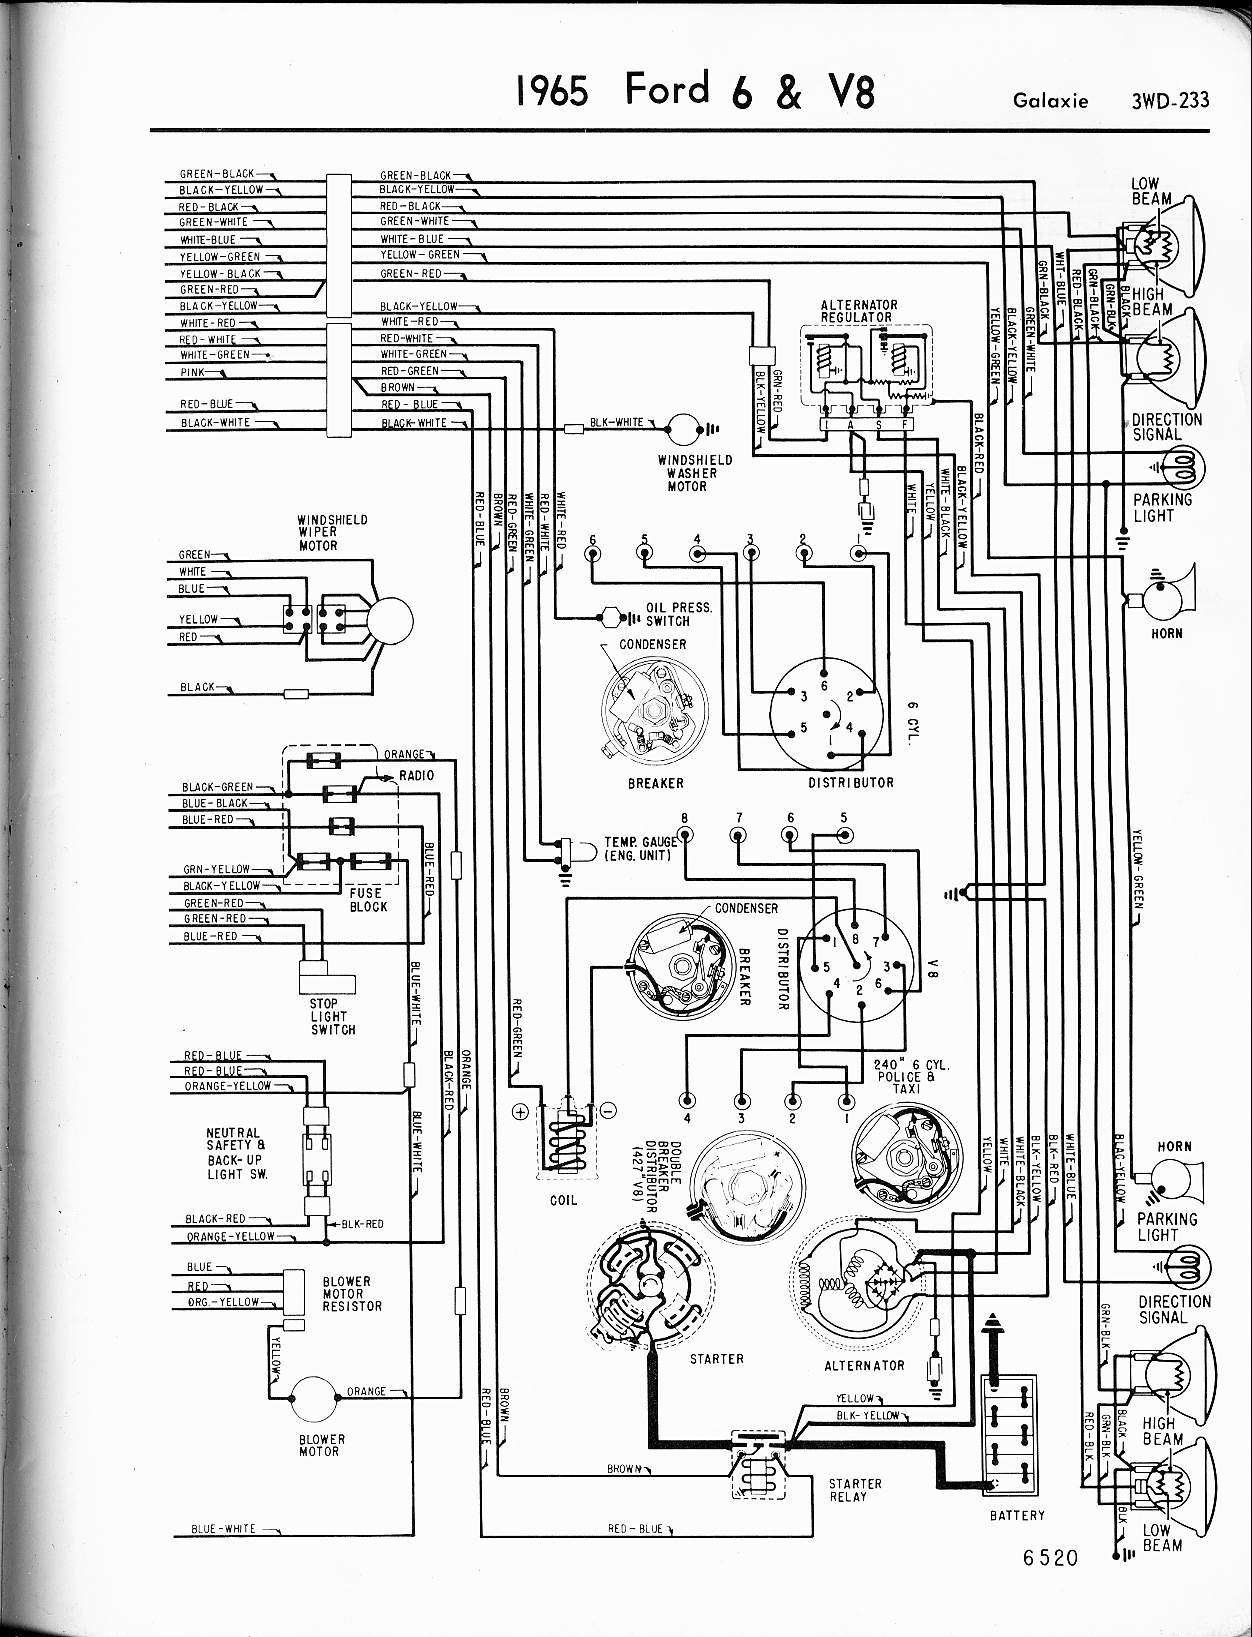 Ford Ignition Diagram Reinvent Your Wiring 460 Coil Wire 57 65 Diagrams Rh Oldcarmanualproject Com 3930 Switch